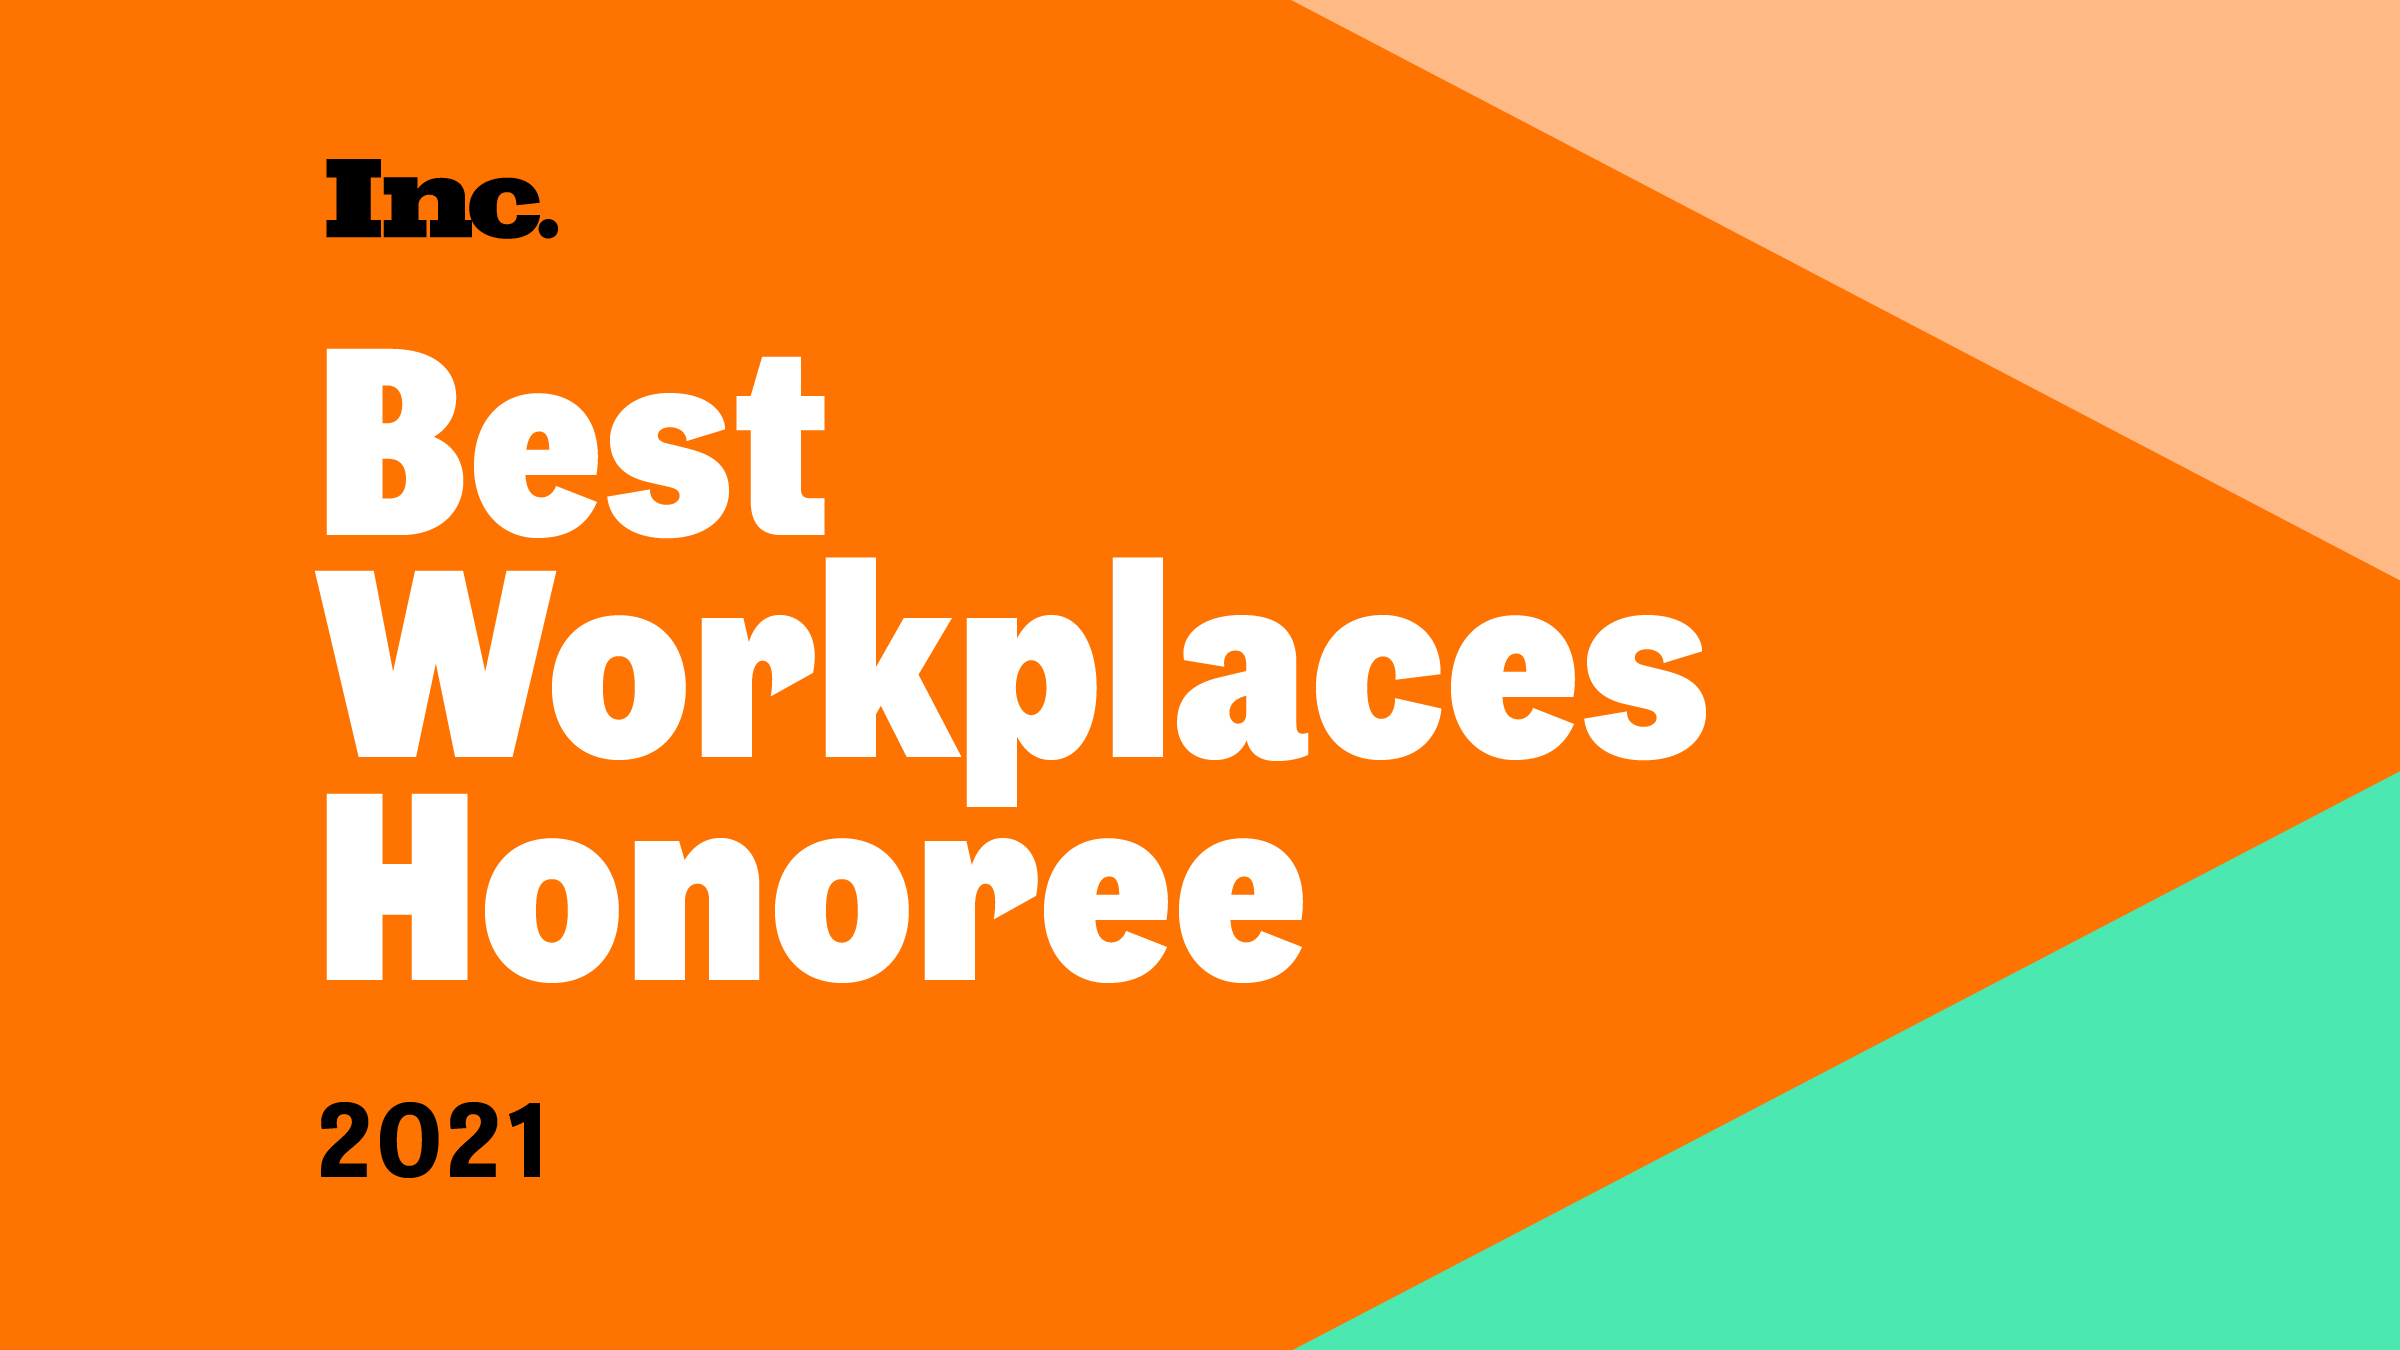 Inc. Best Workplaces